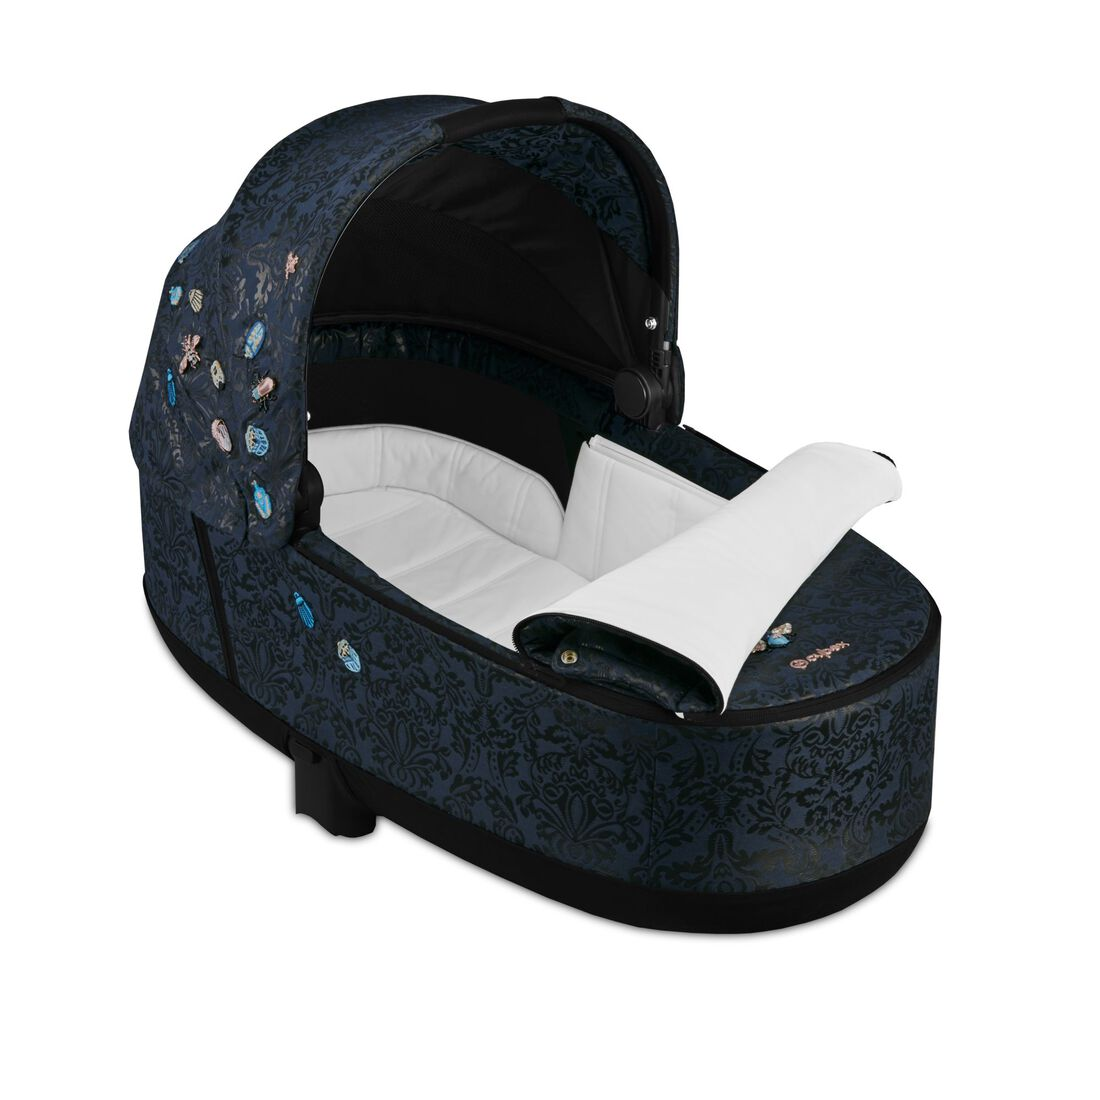 CYBEX Priam Lux Carry Cot - Jewels of Nature in Jewels of Nature large Bild 2